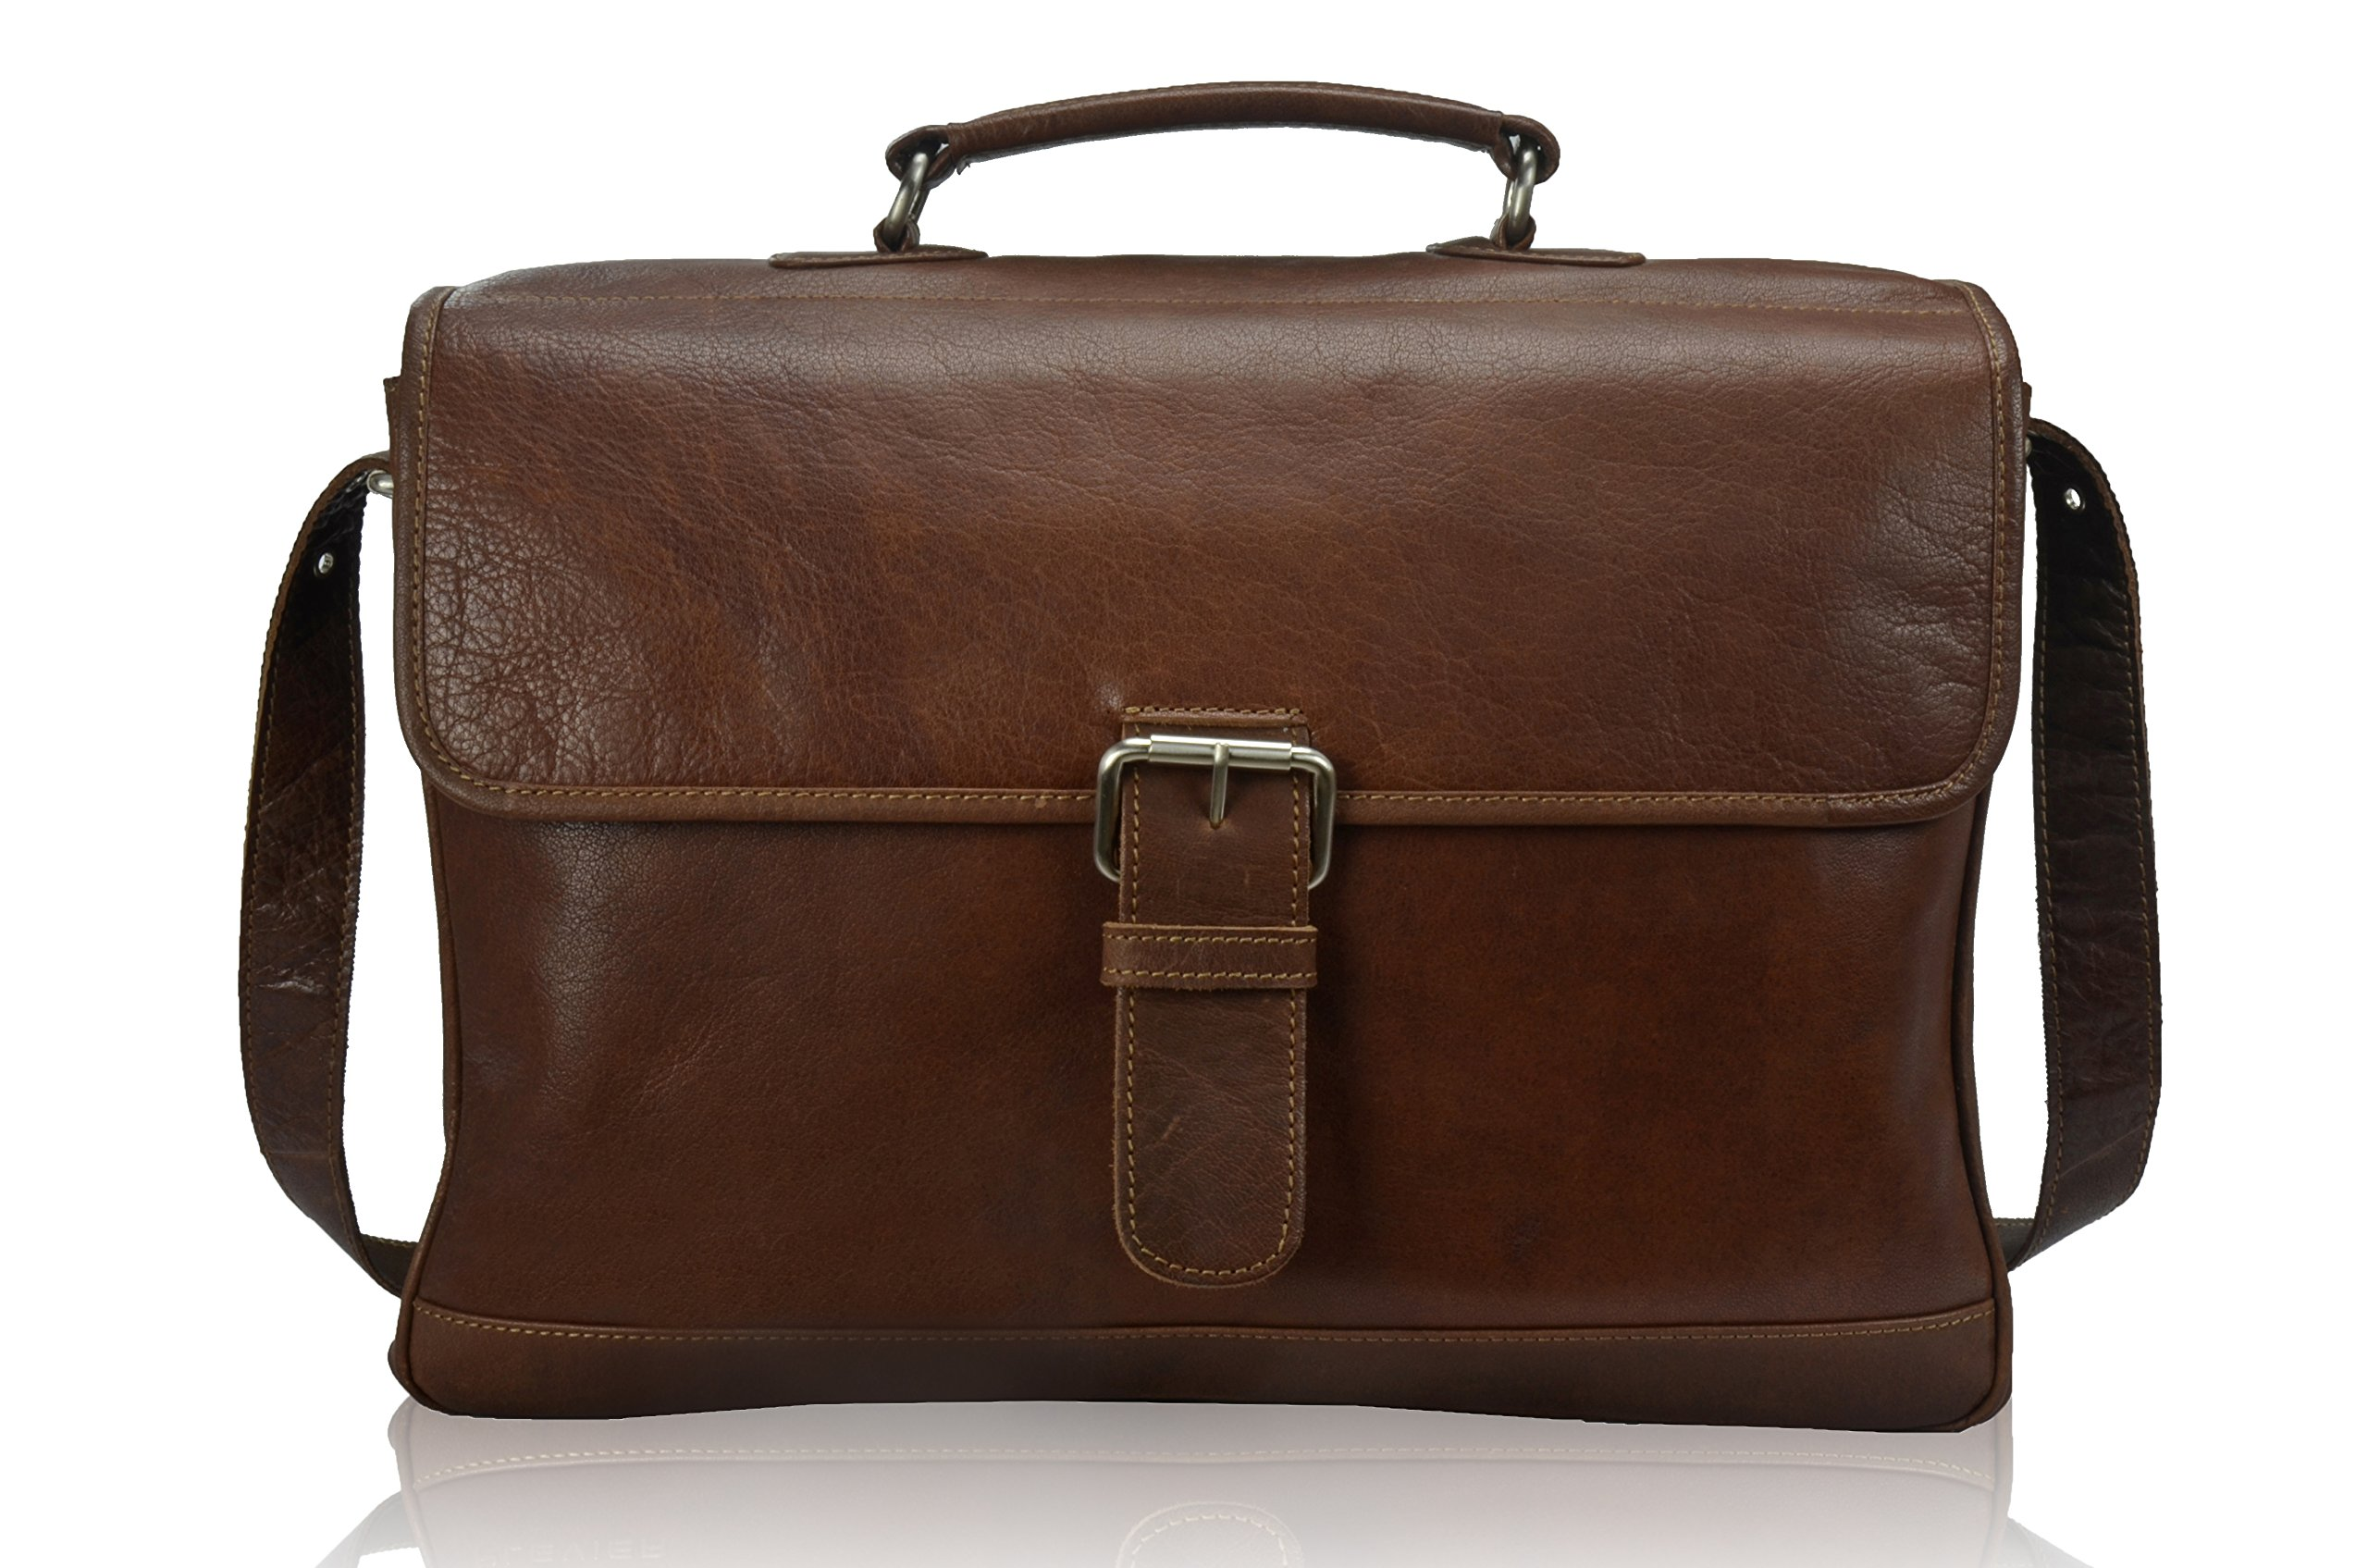 TONY'S BAGS - 15.6 inch Laptop bag - College Bag, Office Bag, Business Bag Briefcase in Vintage Style